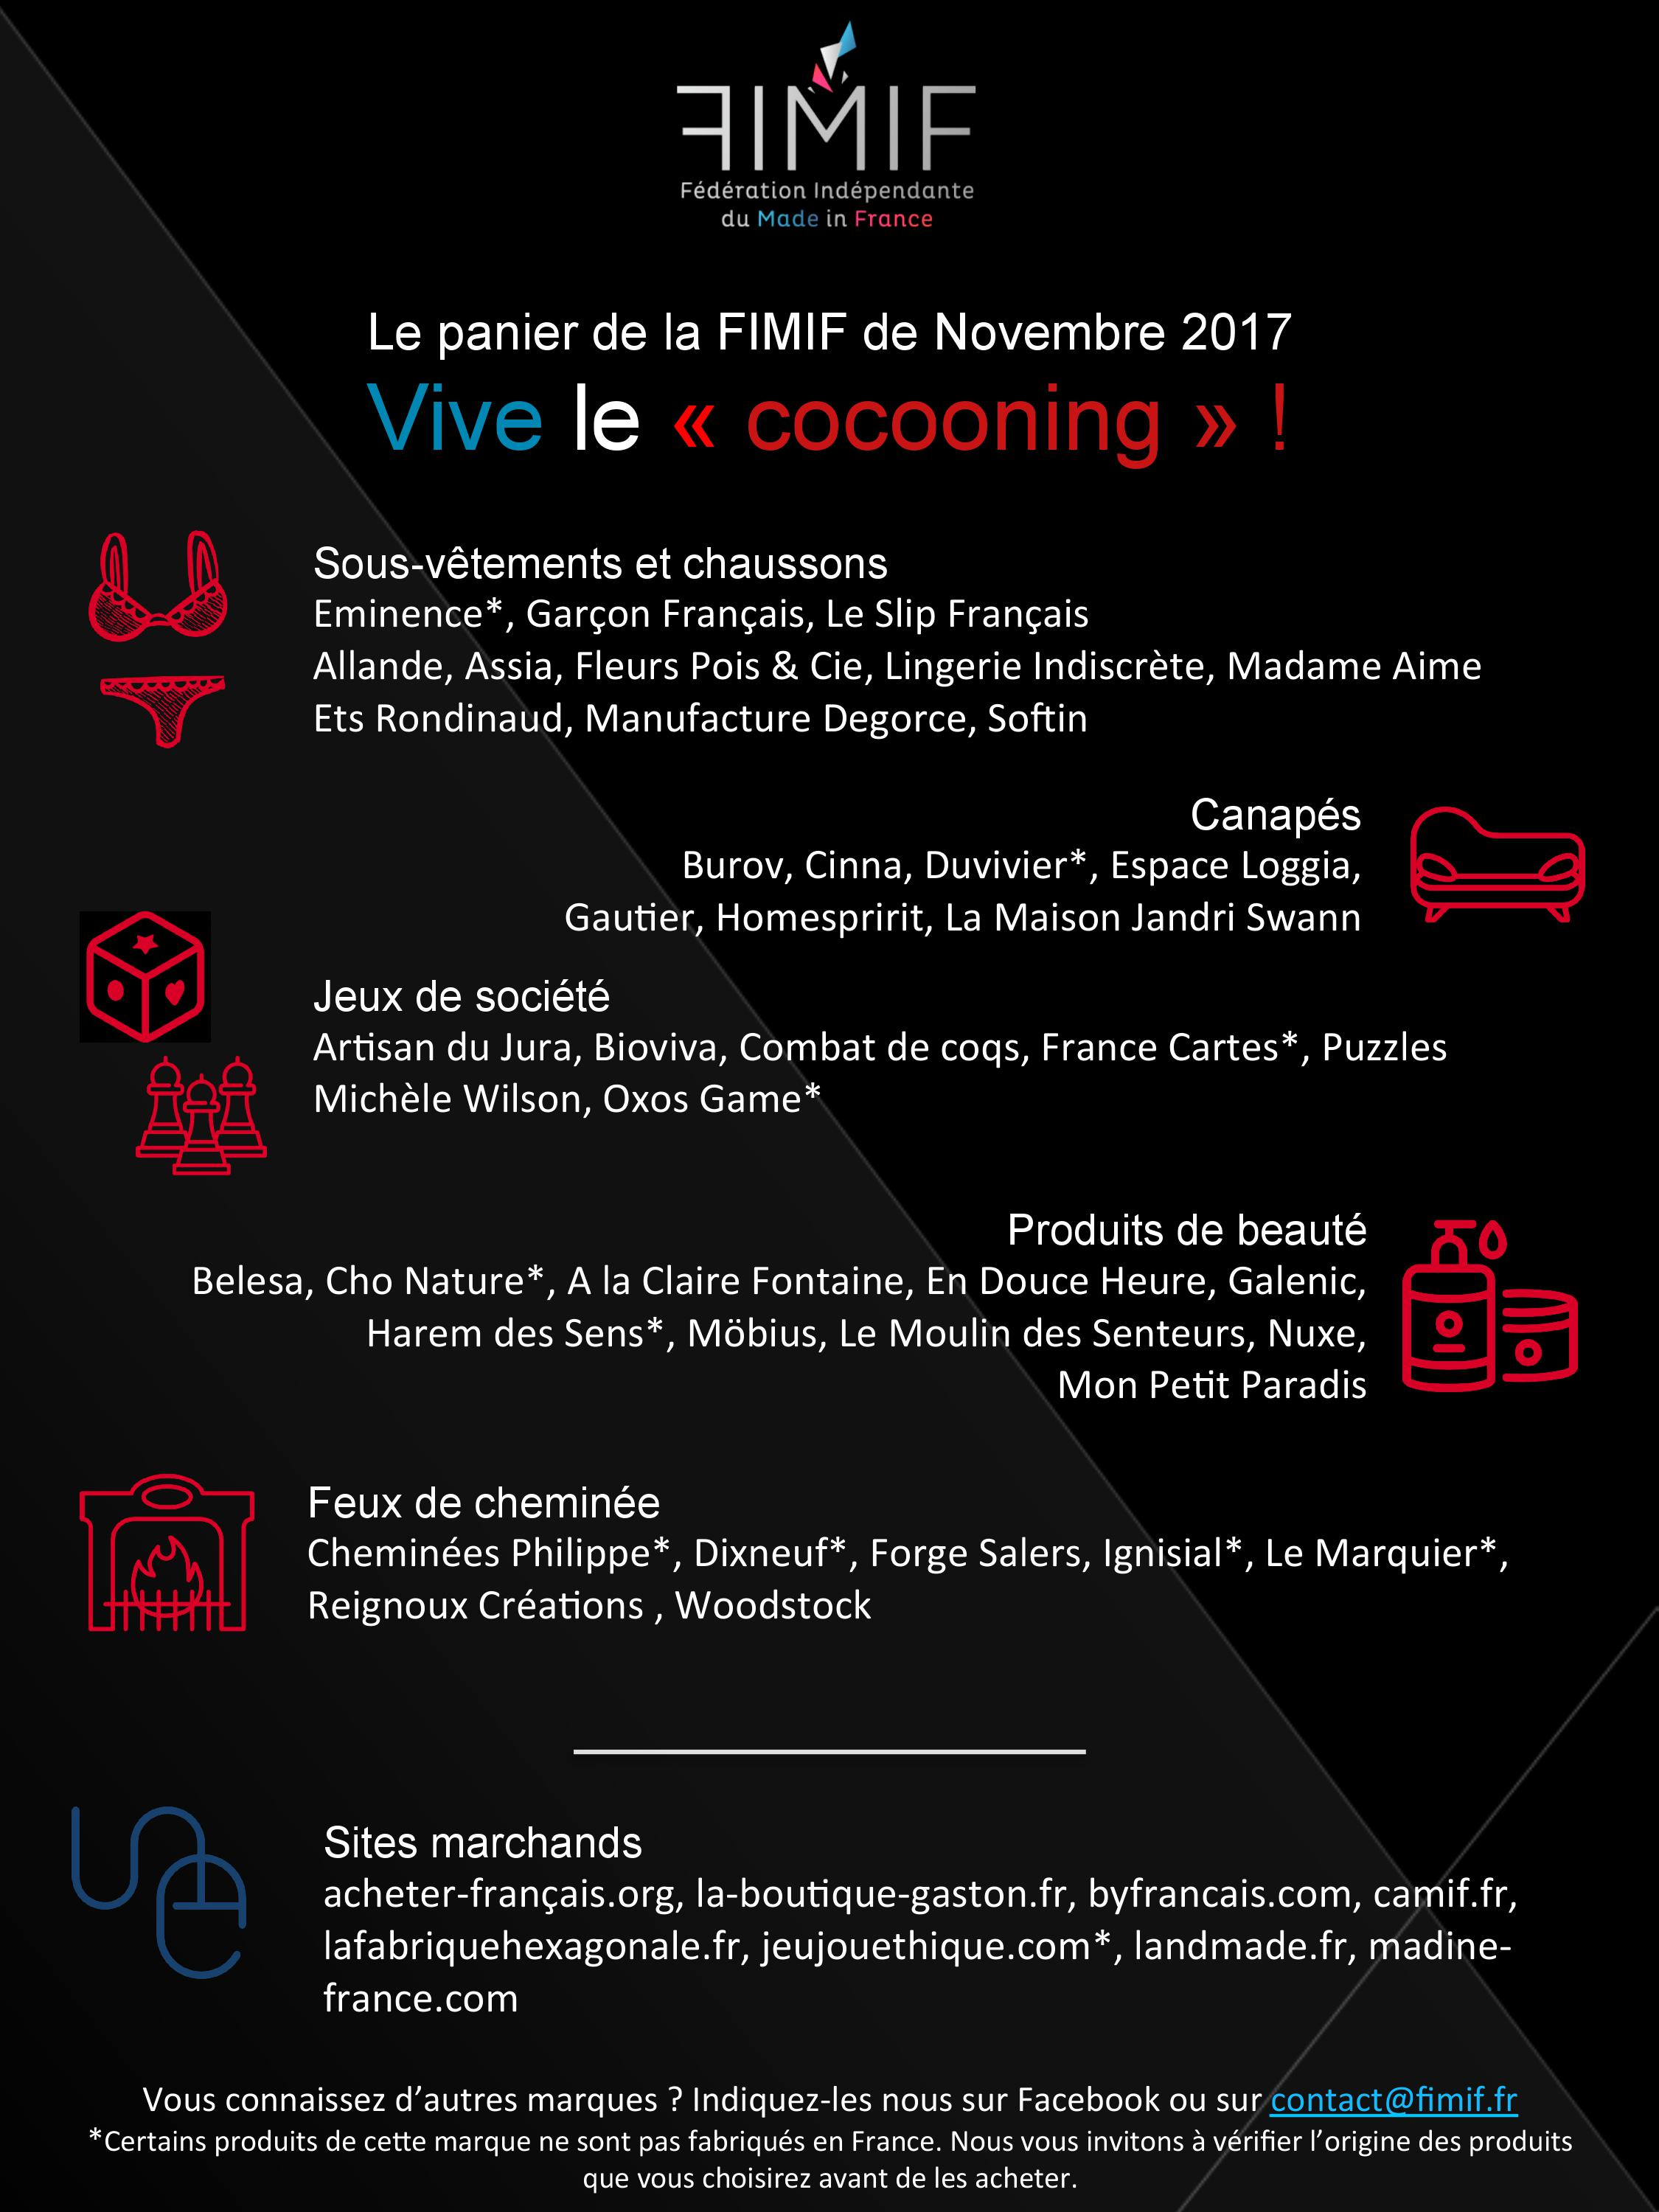 Cocooning made in france canap s feux de chemin es for Mif expo le salon du made in france 10 novembre